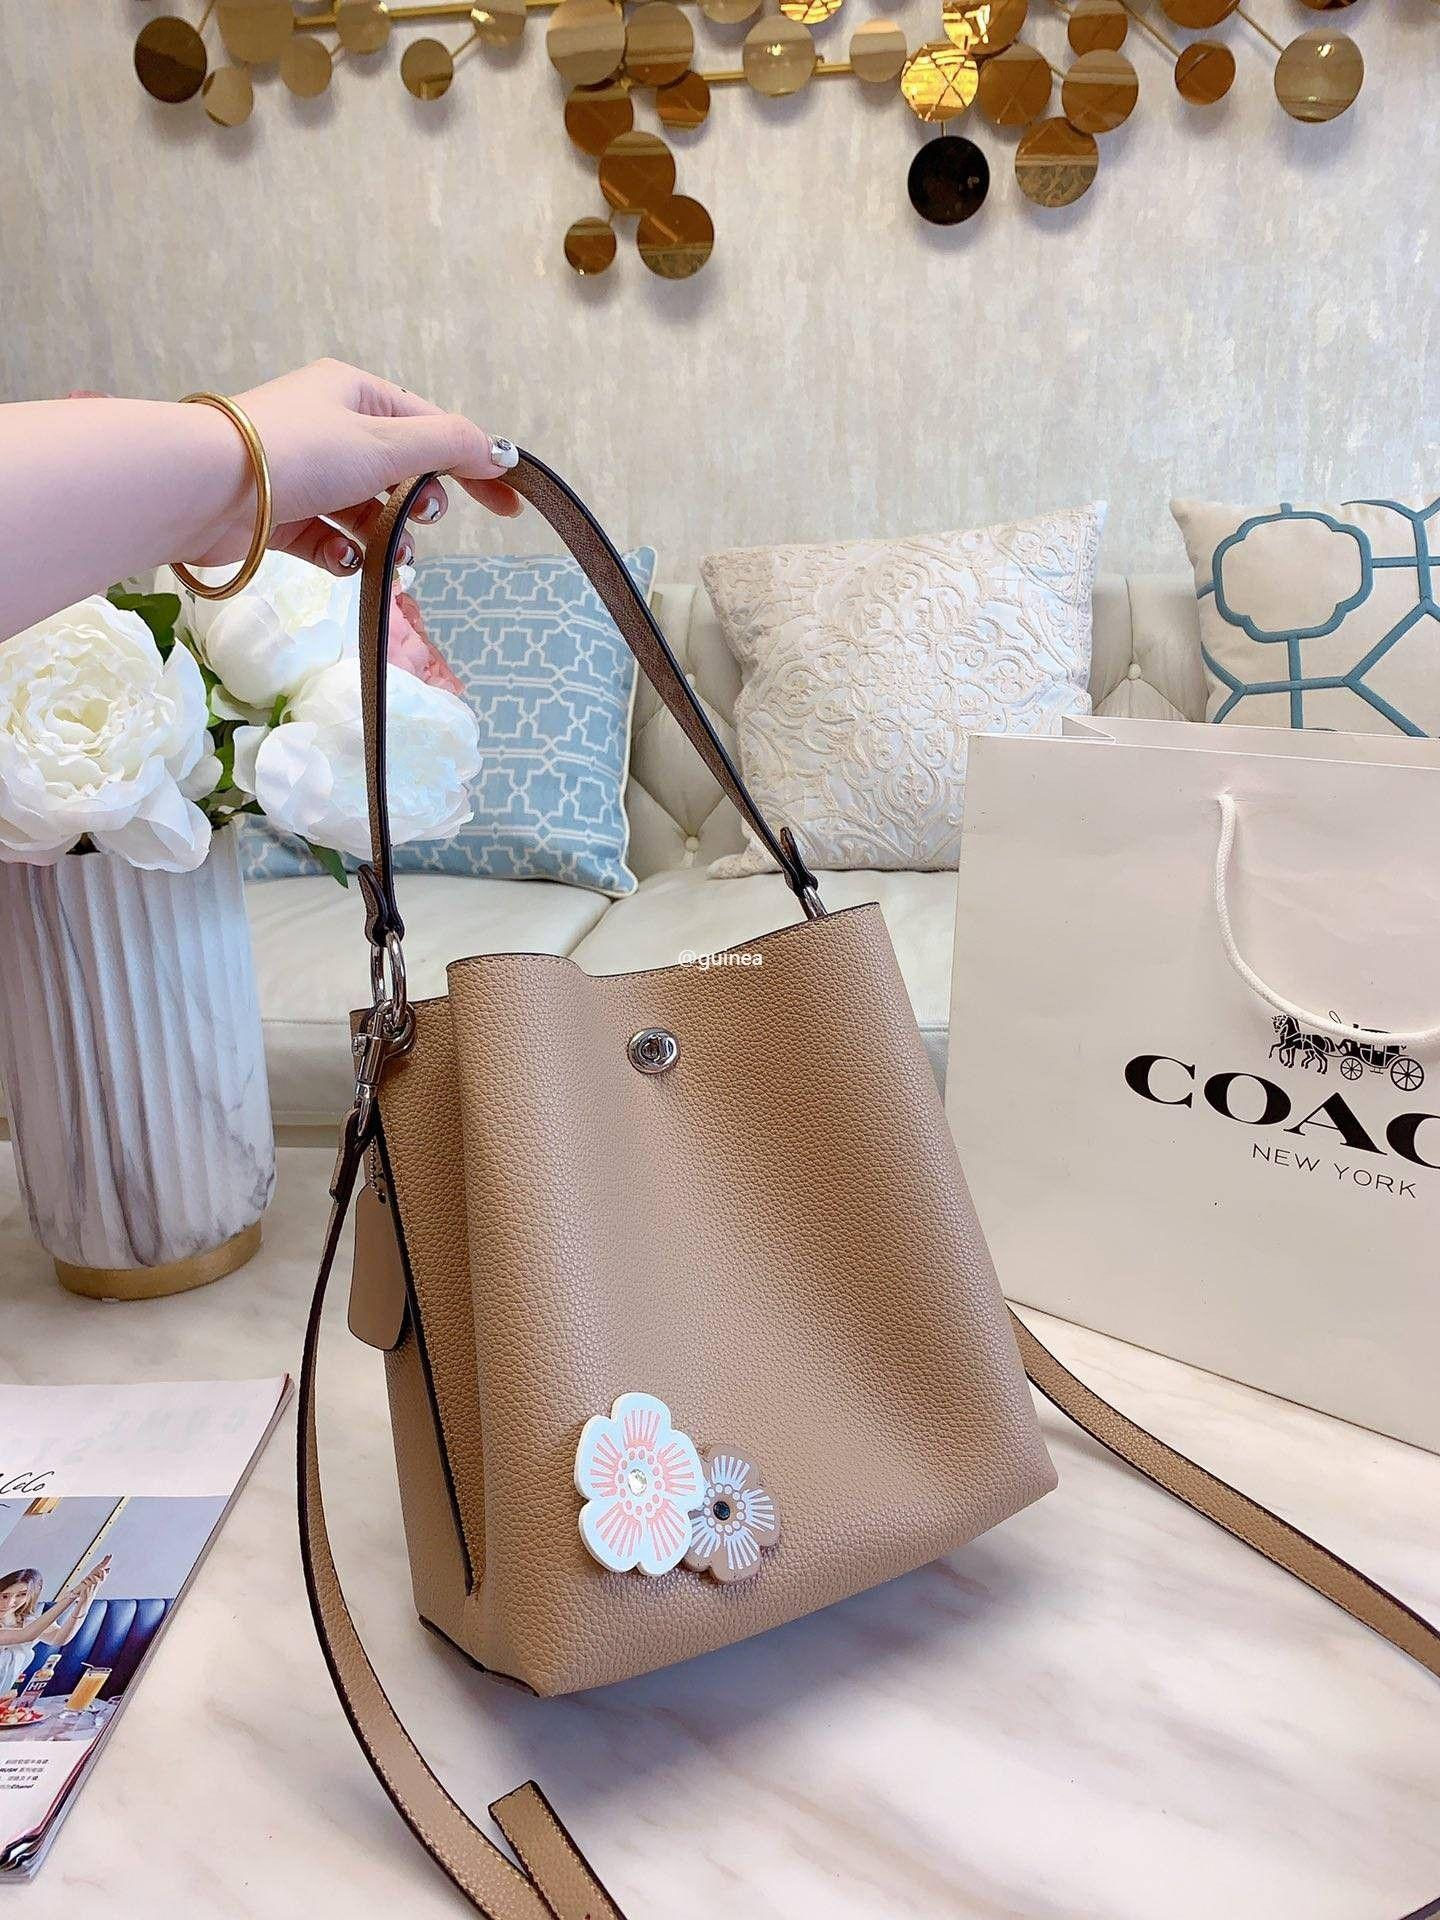 Coach Counter Quality New Charlie Bucket Bag Bucket Shoul Women S Fashion Clothes Outerwear On Carousell